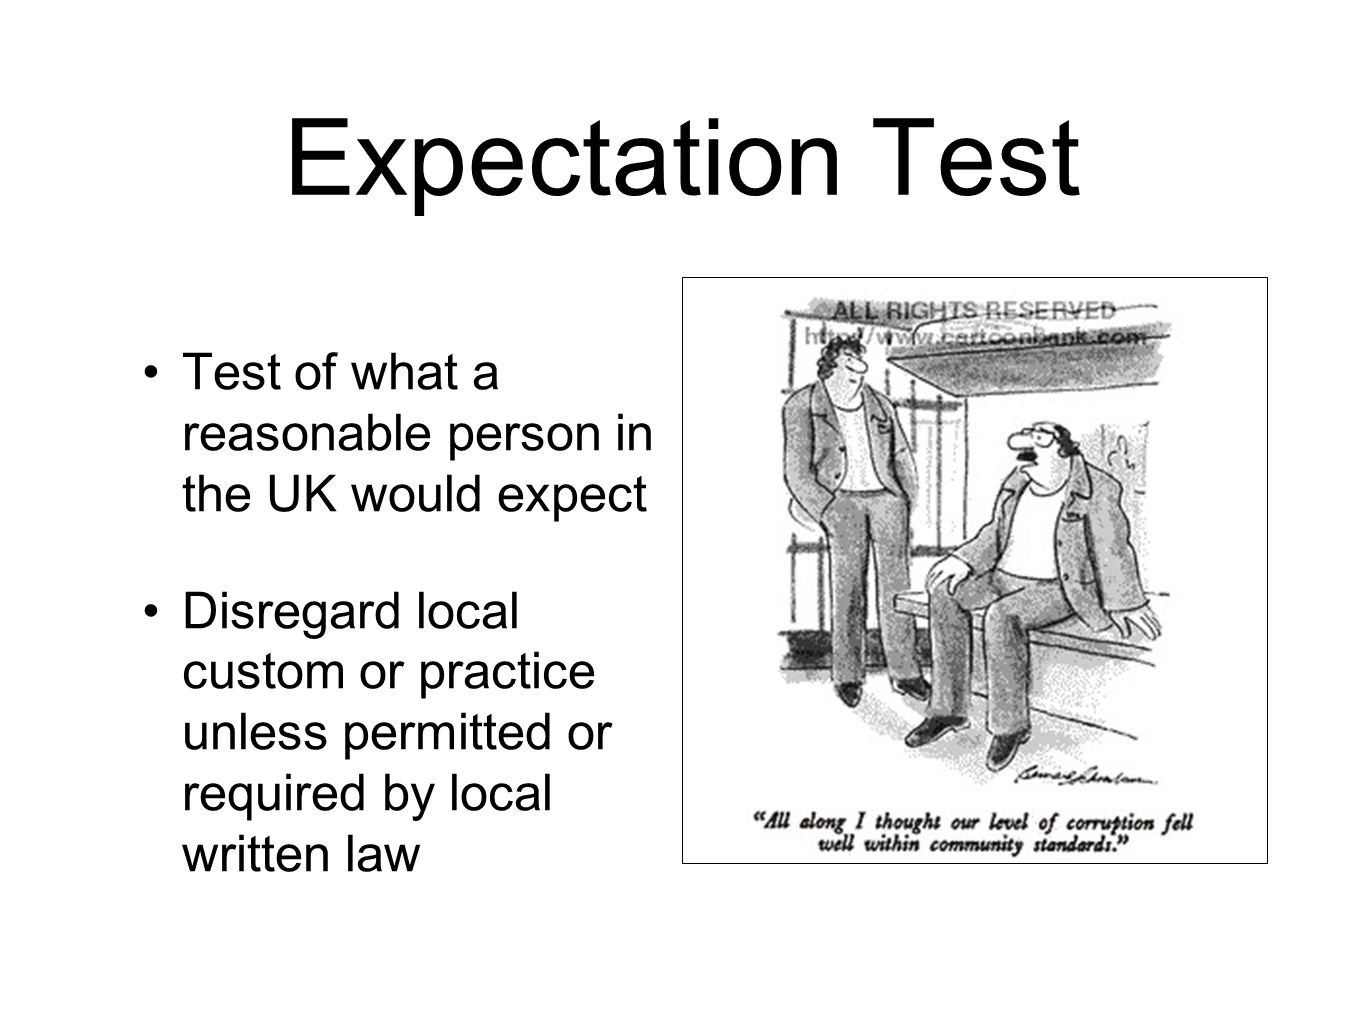 Expectation Test Test of what a reasonable person in the UK would expect Disregard local custom or practice unless permitted or required by local written law